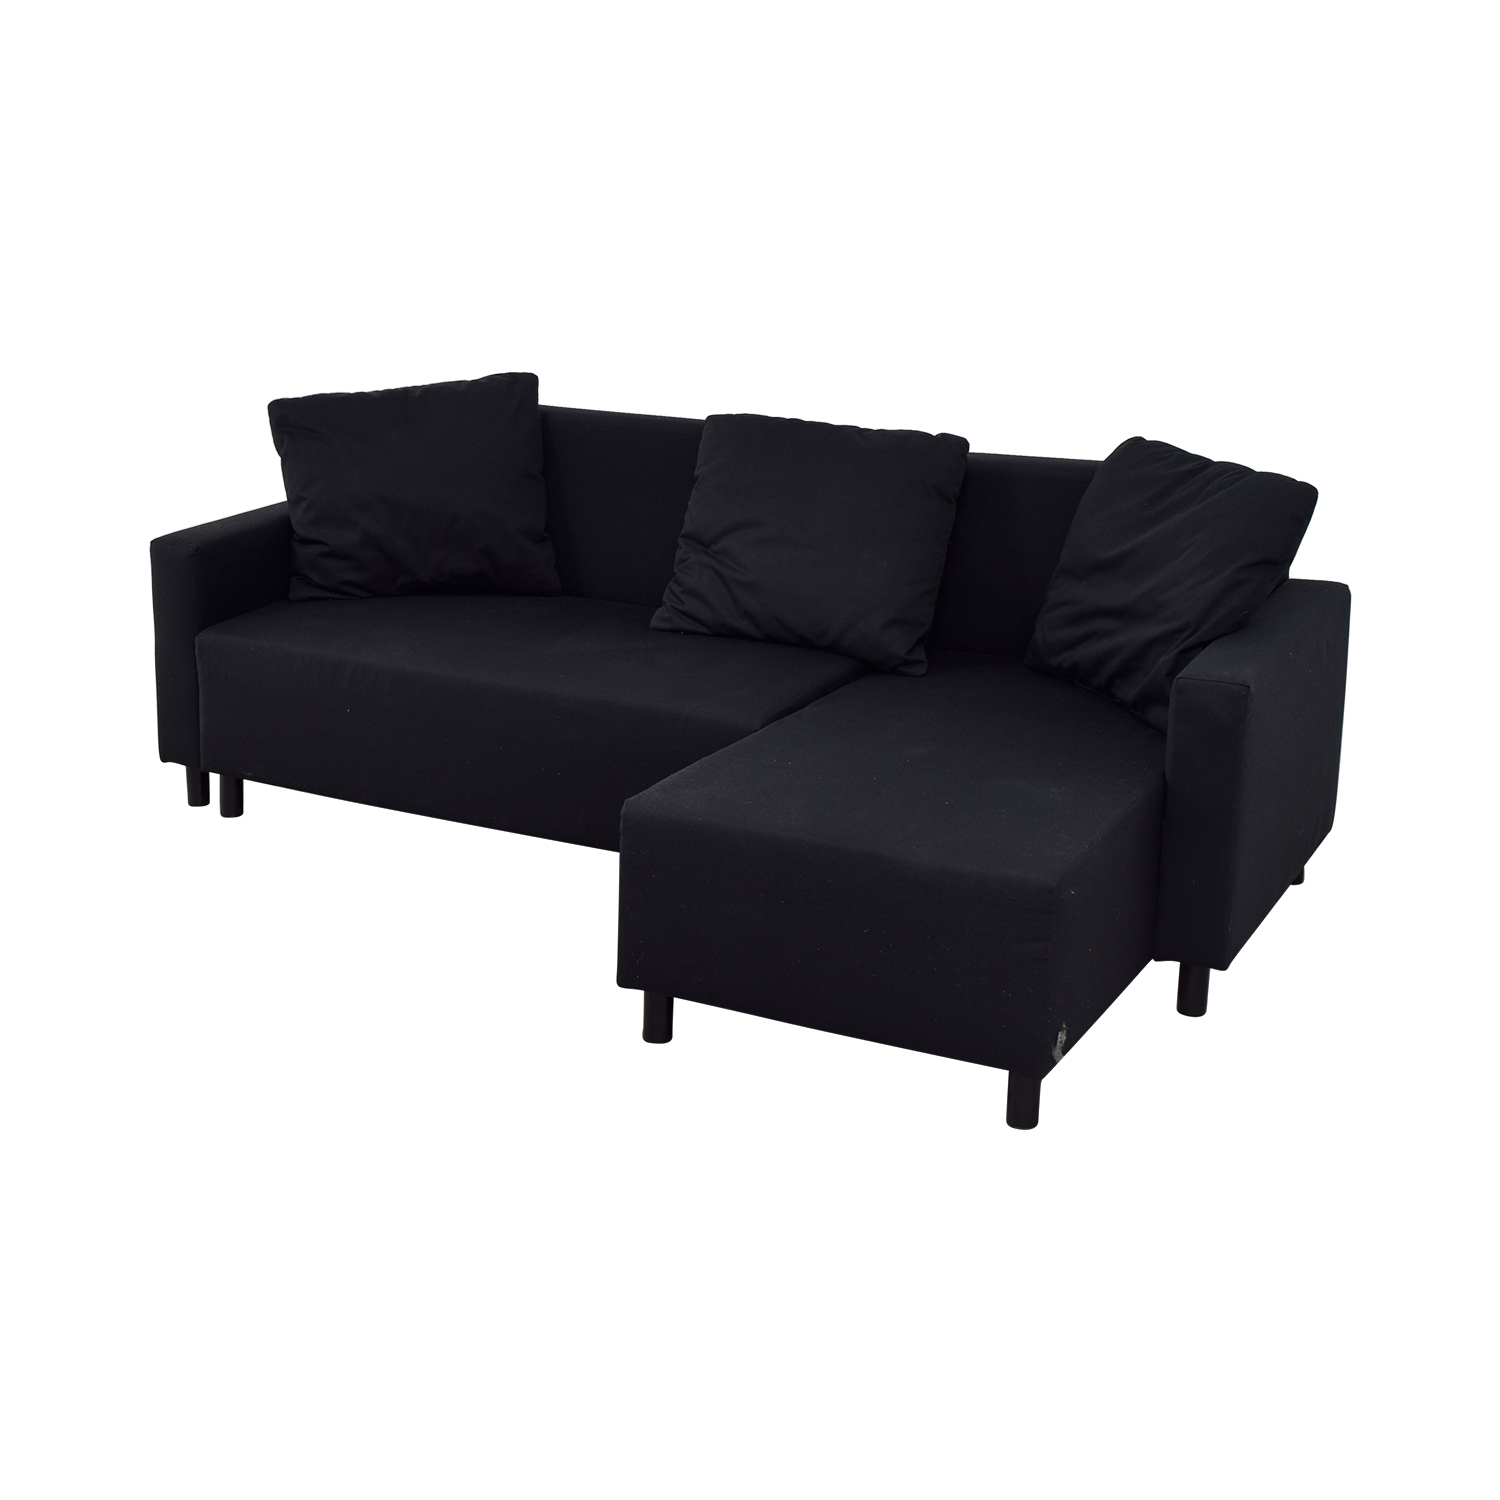 31 Off Ikea Ikea Black Sleeper Chaise Sectional With Storage